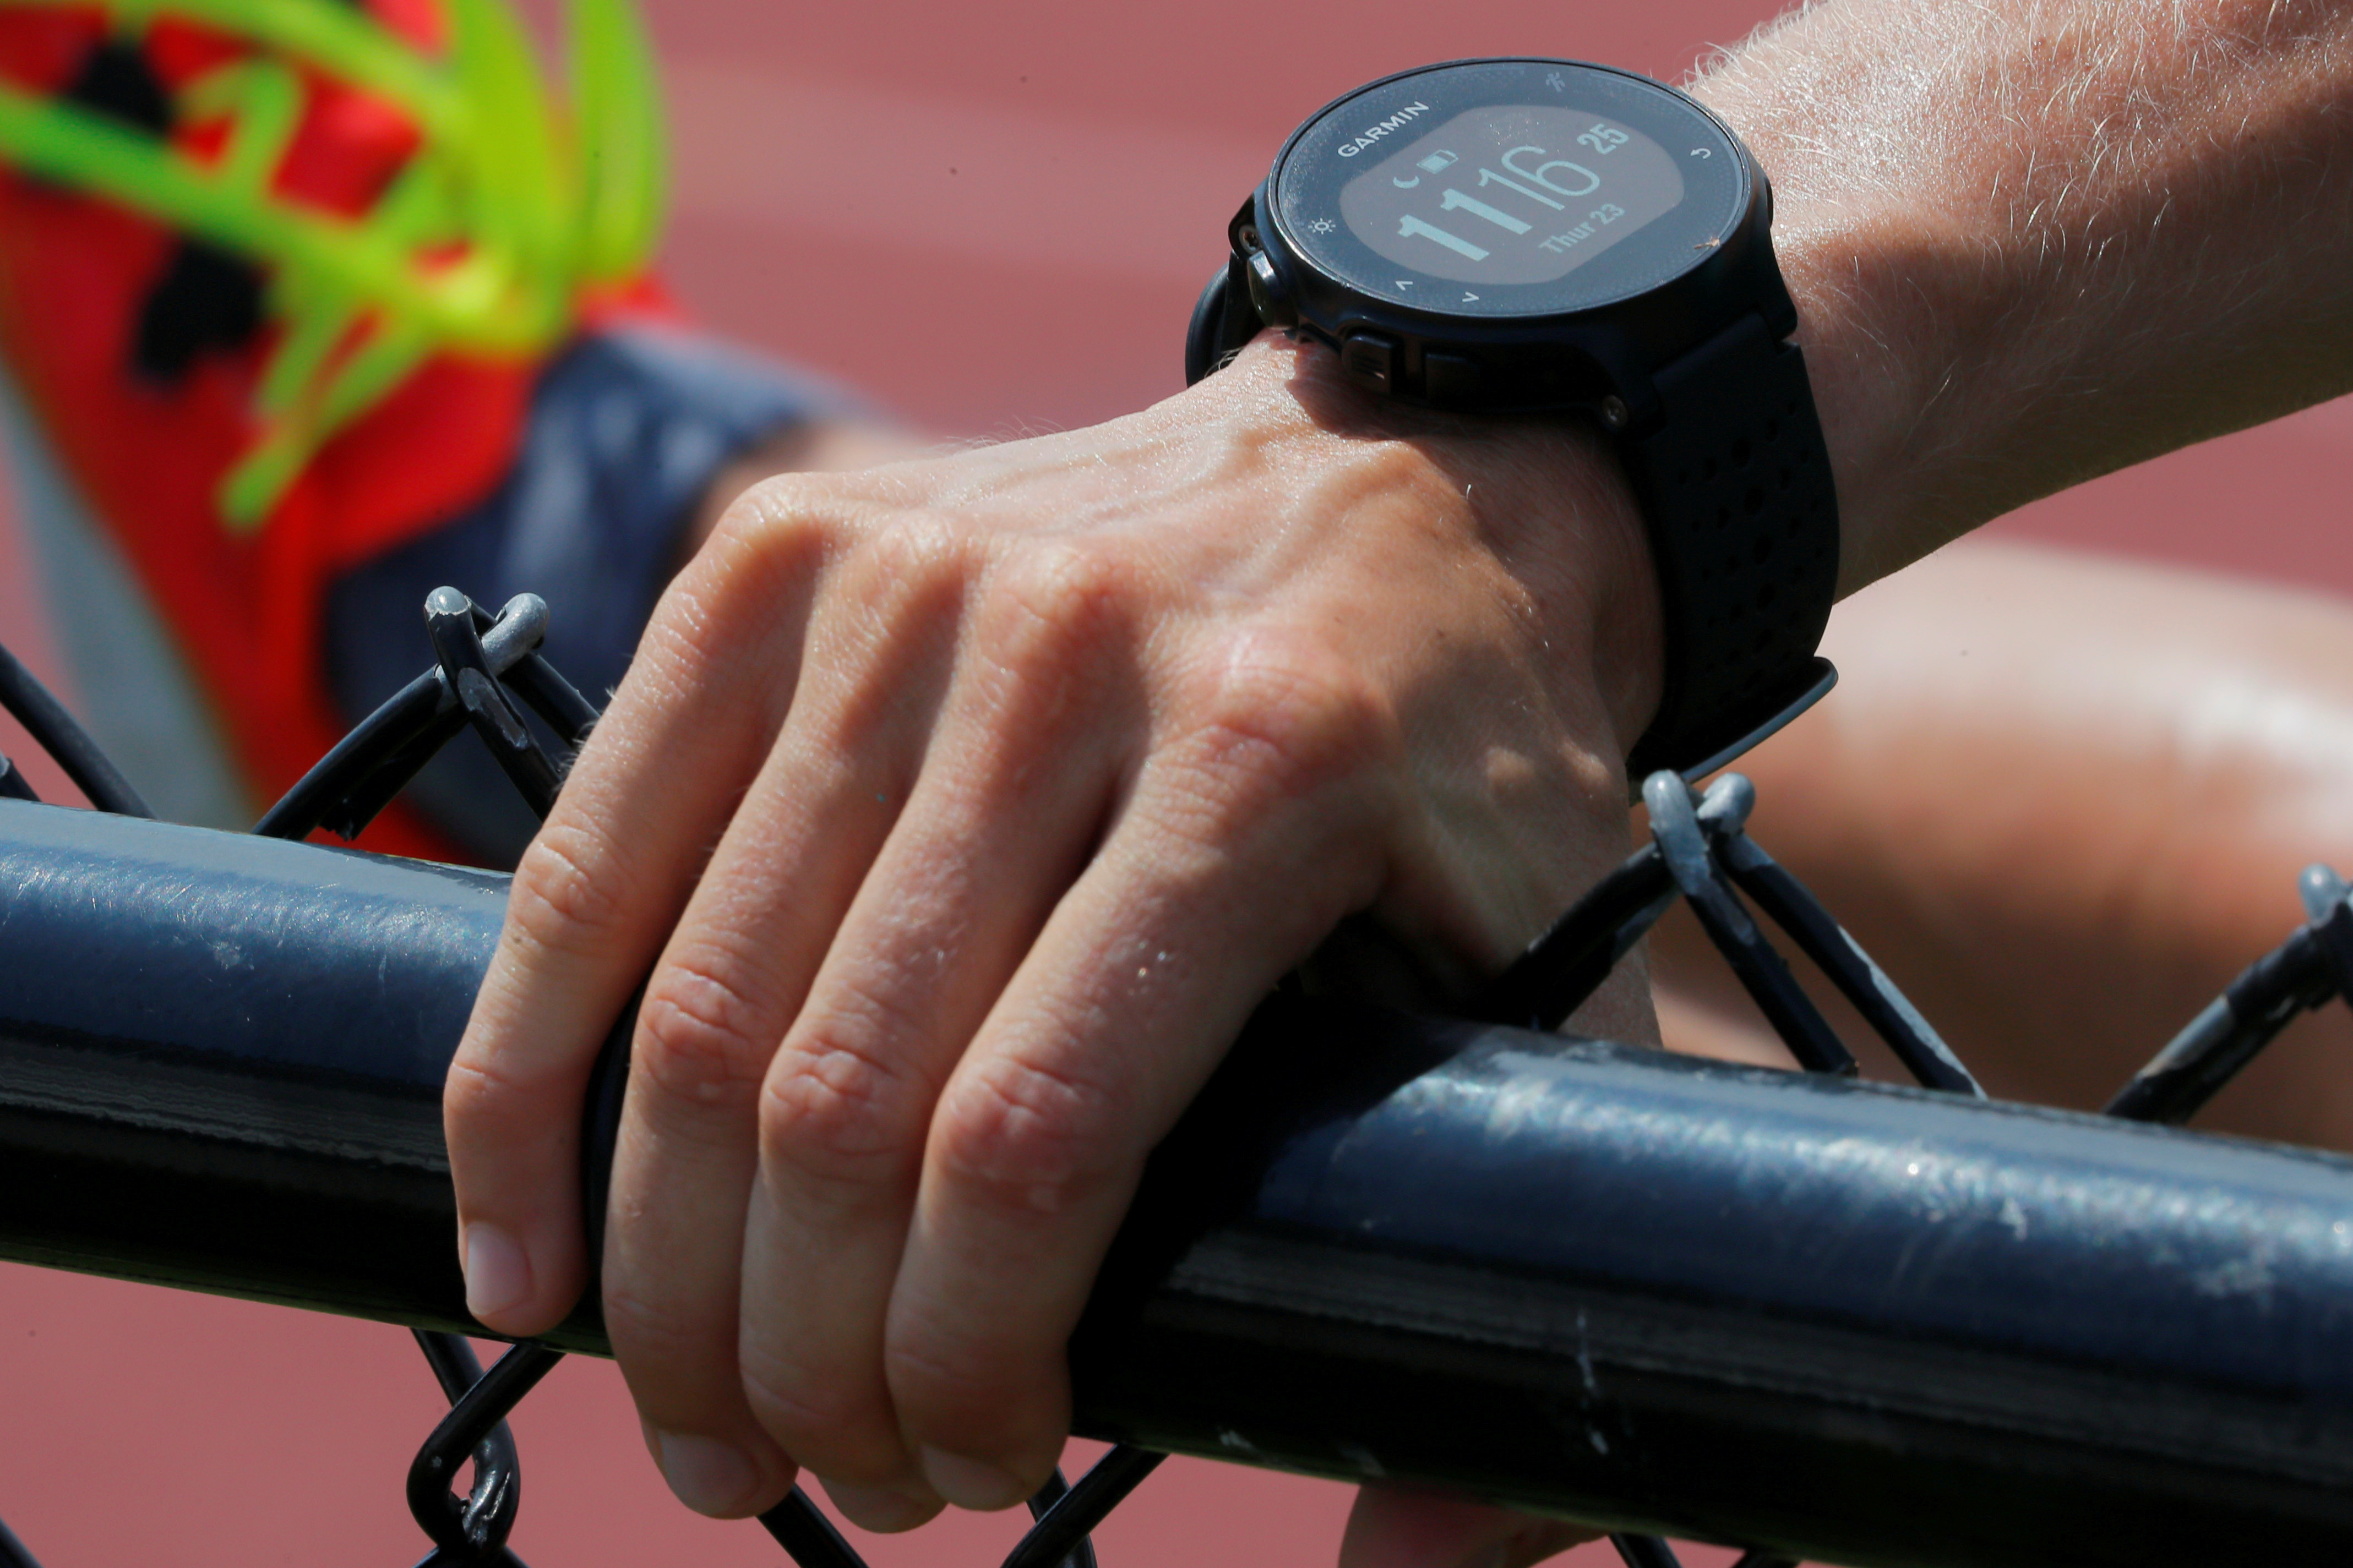 A runner wearing a Garmin smart watch, a device which some experts are studying to determine if it might be used to help detect early coronavirus disease (COVID-19) infection.